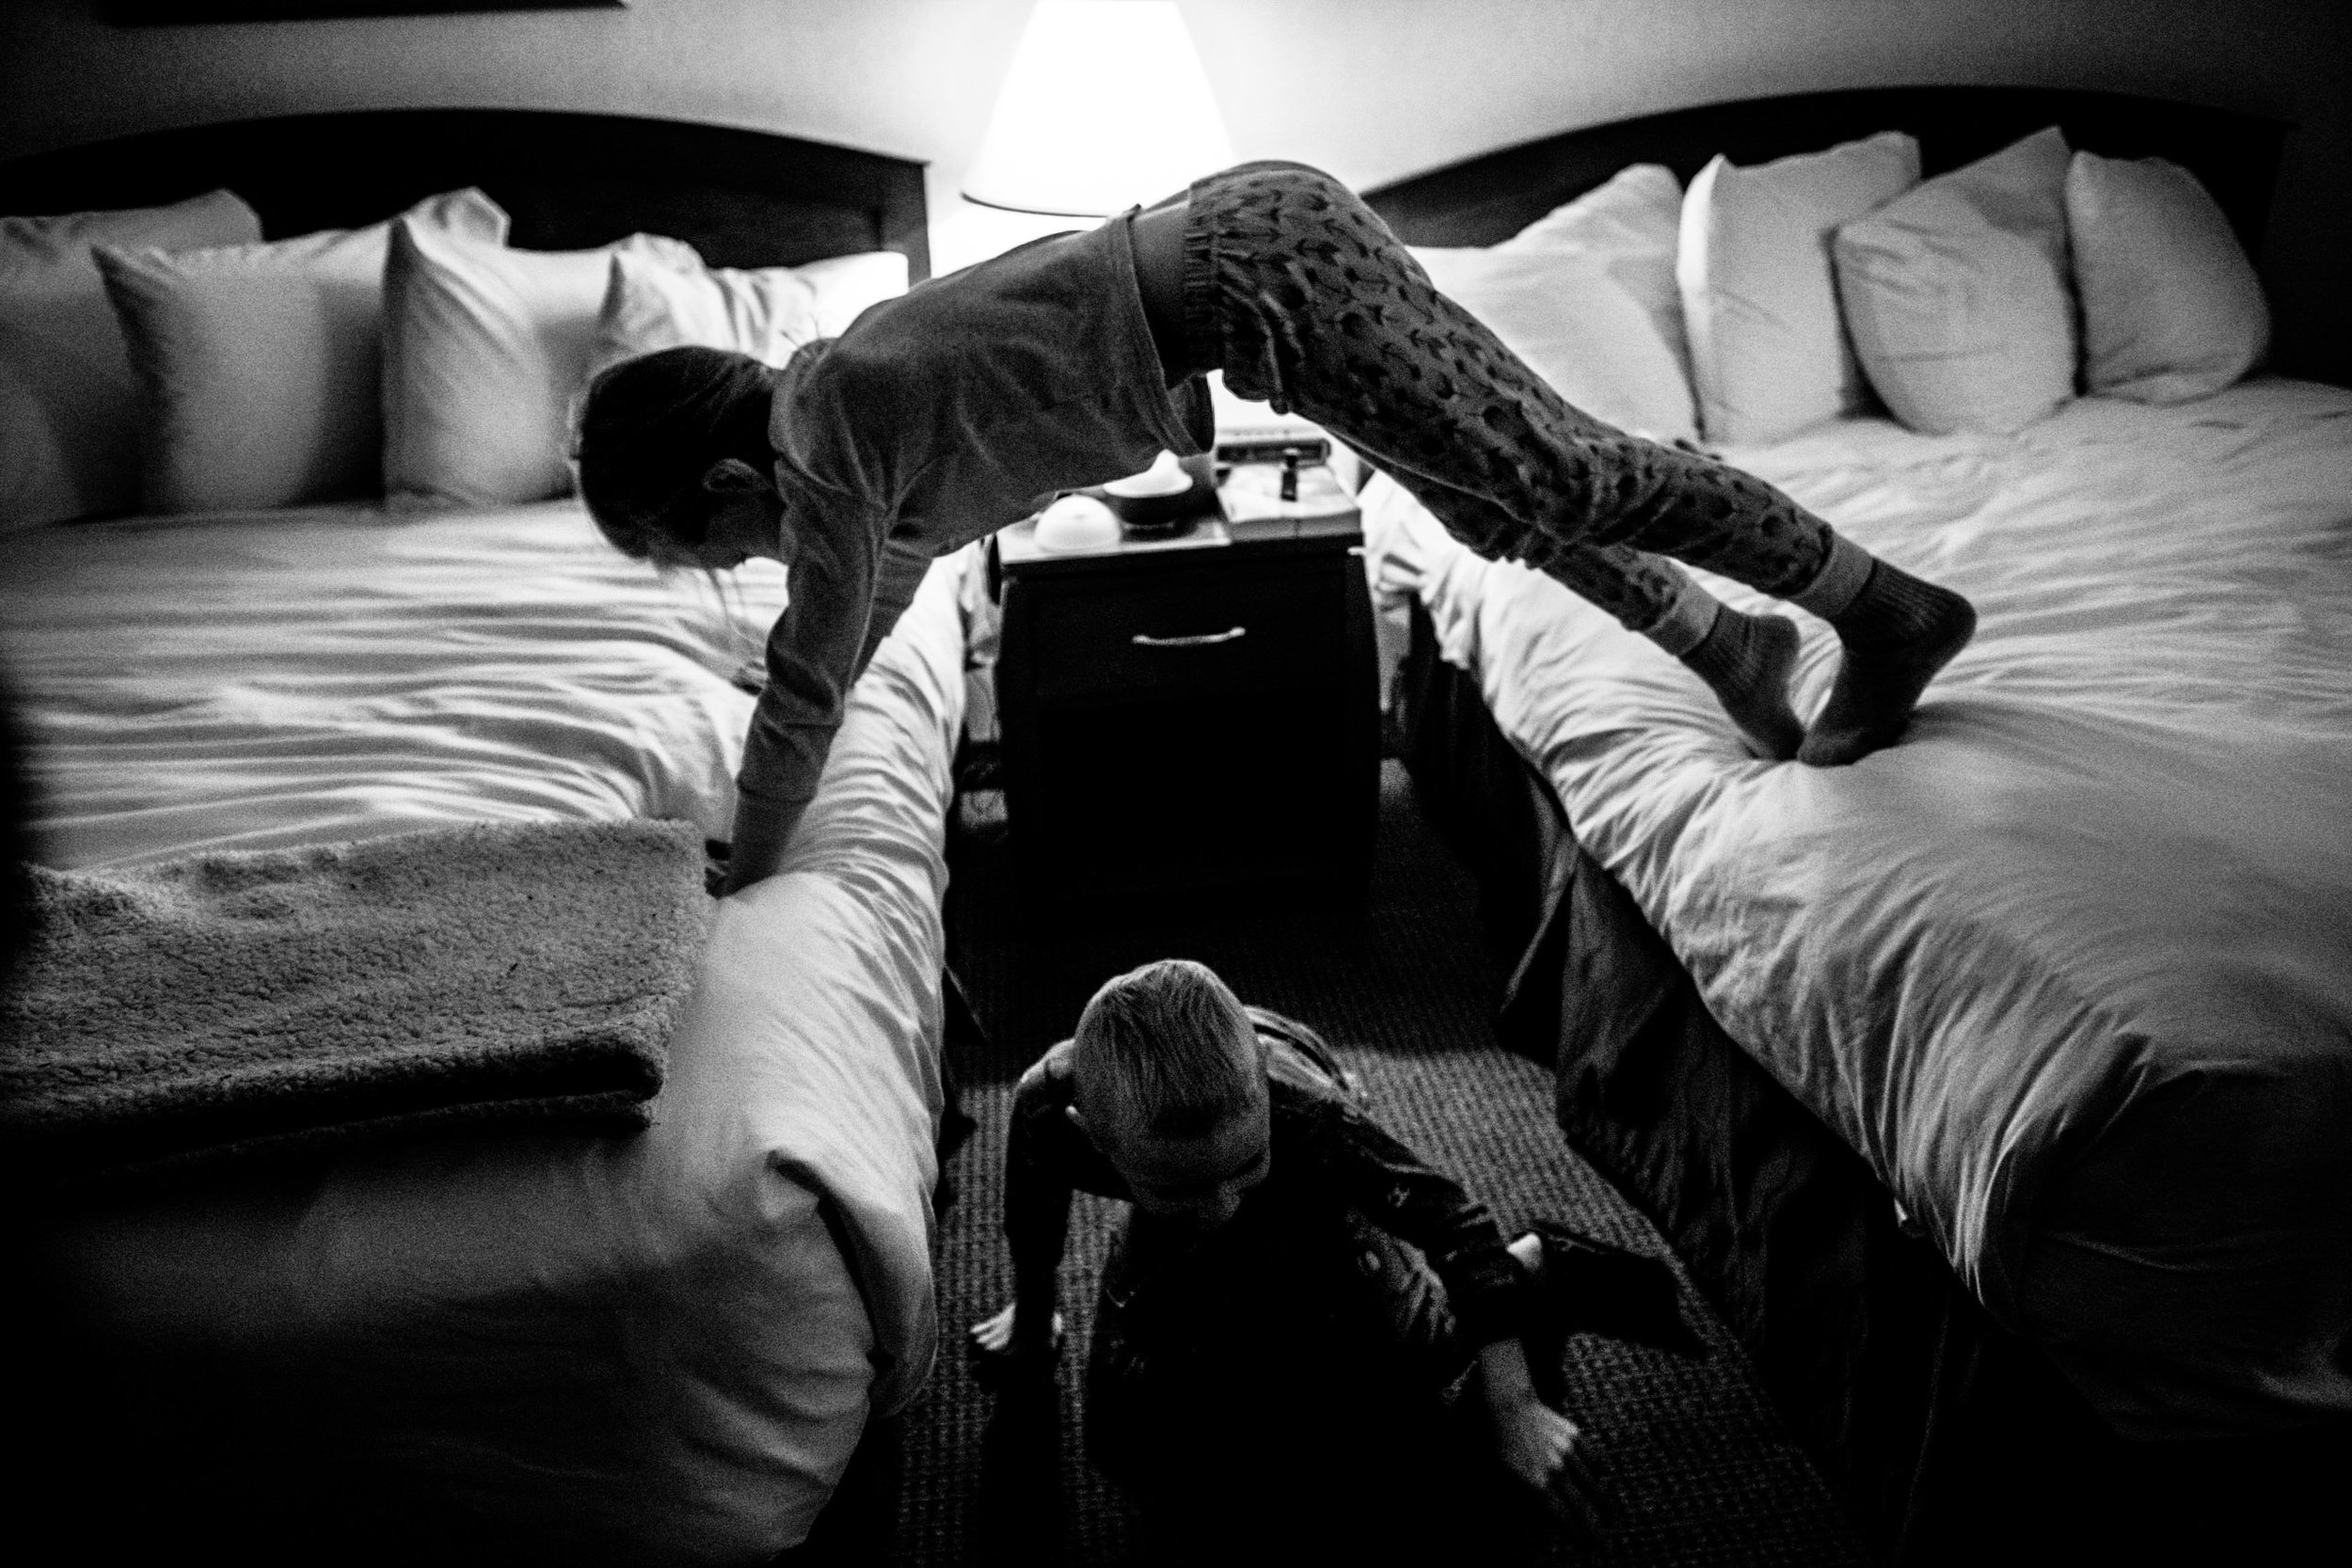 kids in hotel room playing on beds making a bridge with one child crawling under